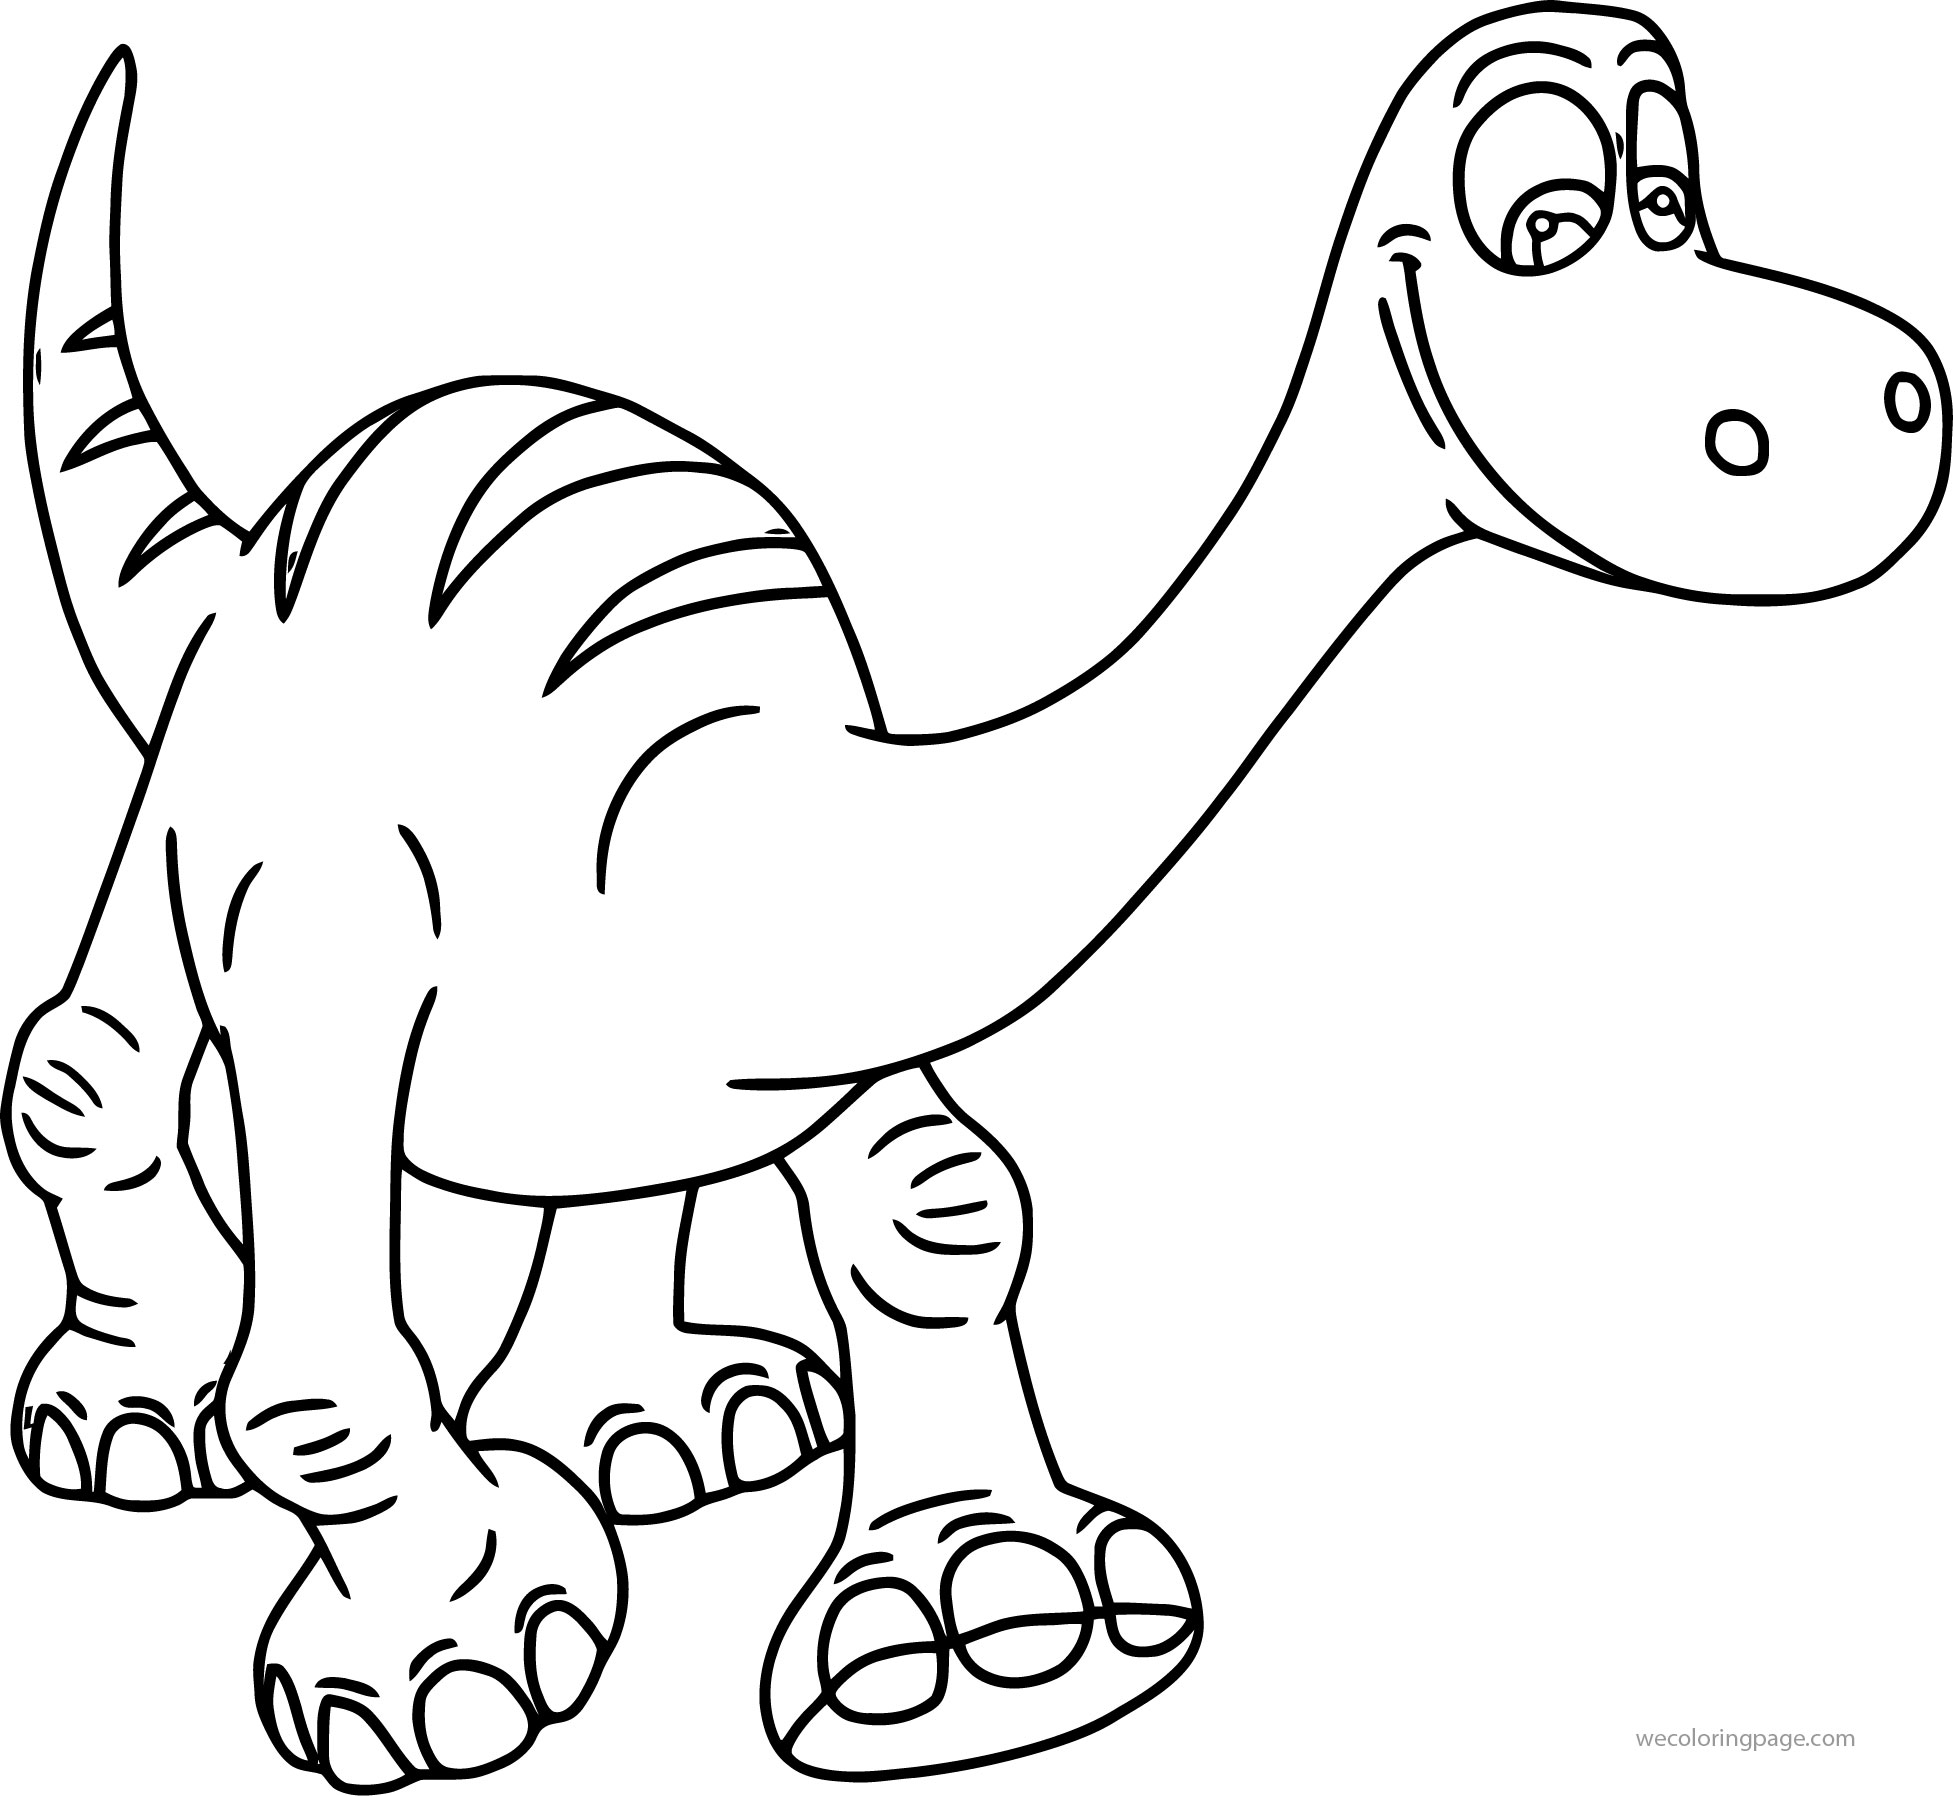 The Good Dinosaur Disney Coloring Pages